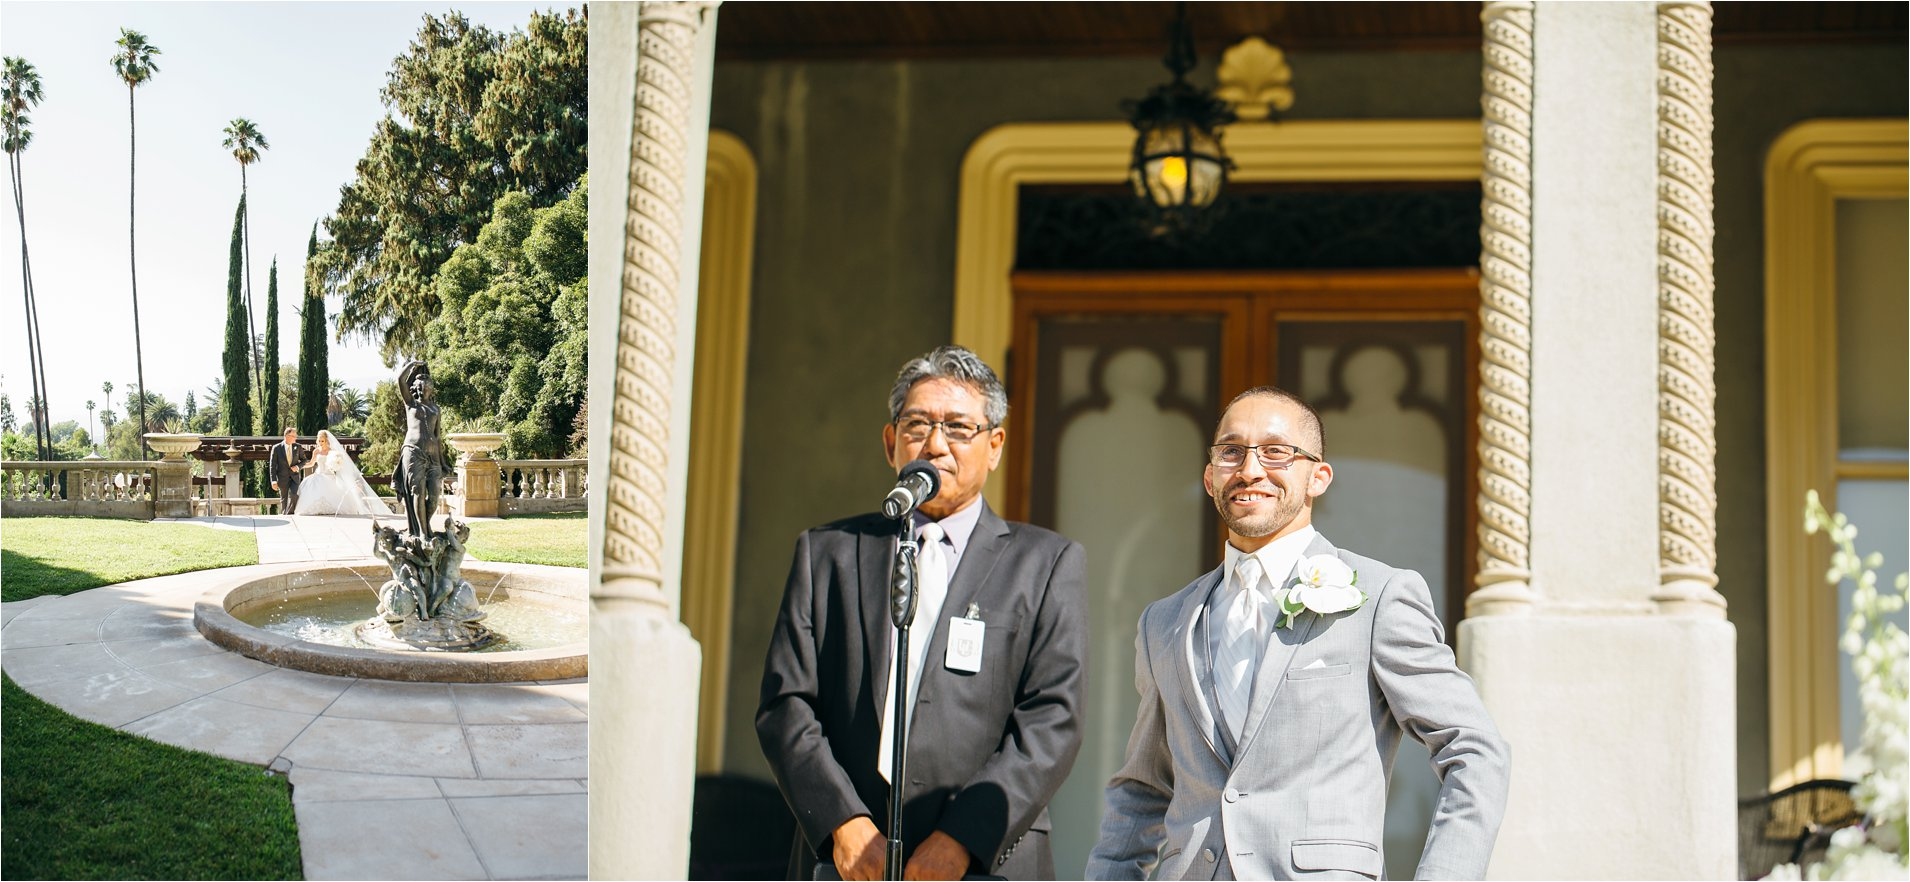 First Look - Redlands Wedding Photographer